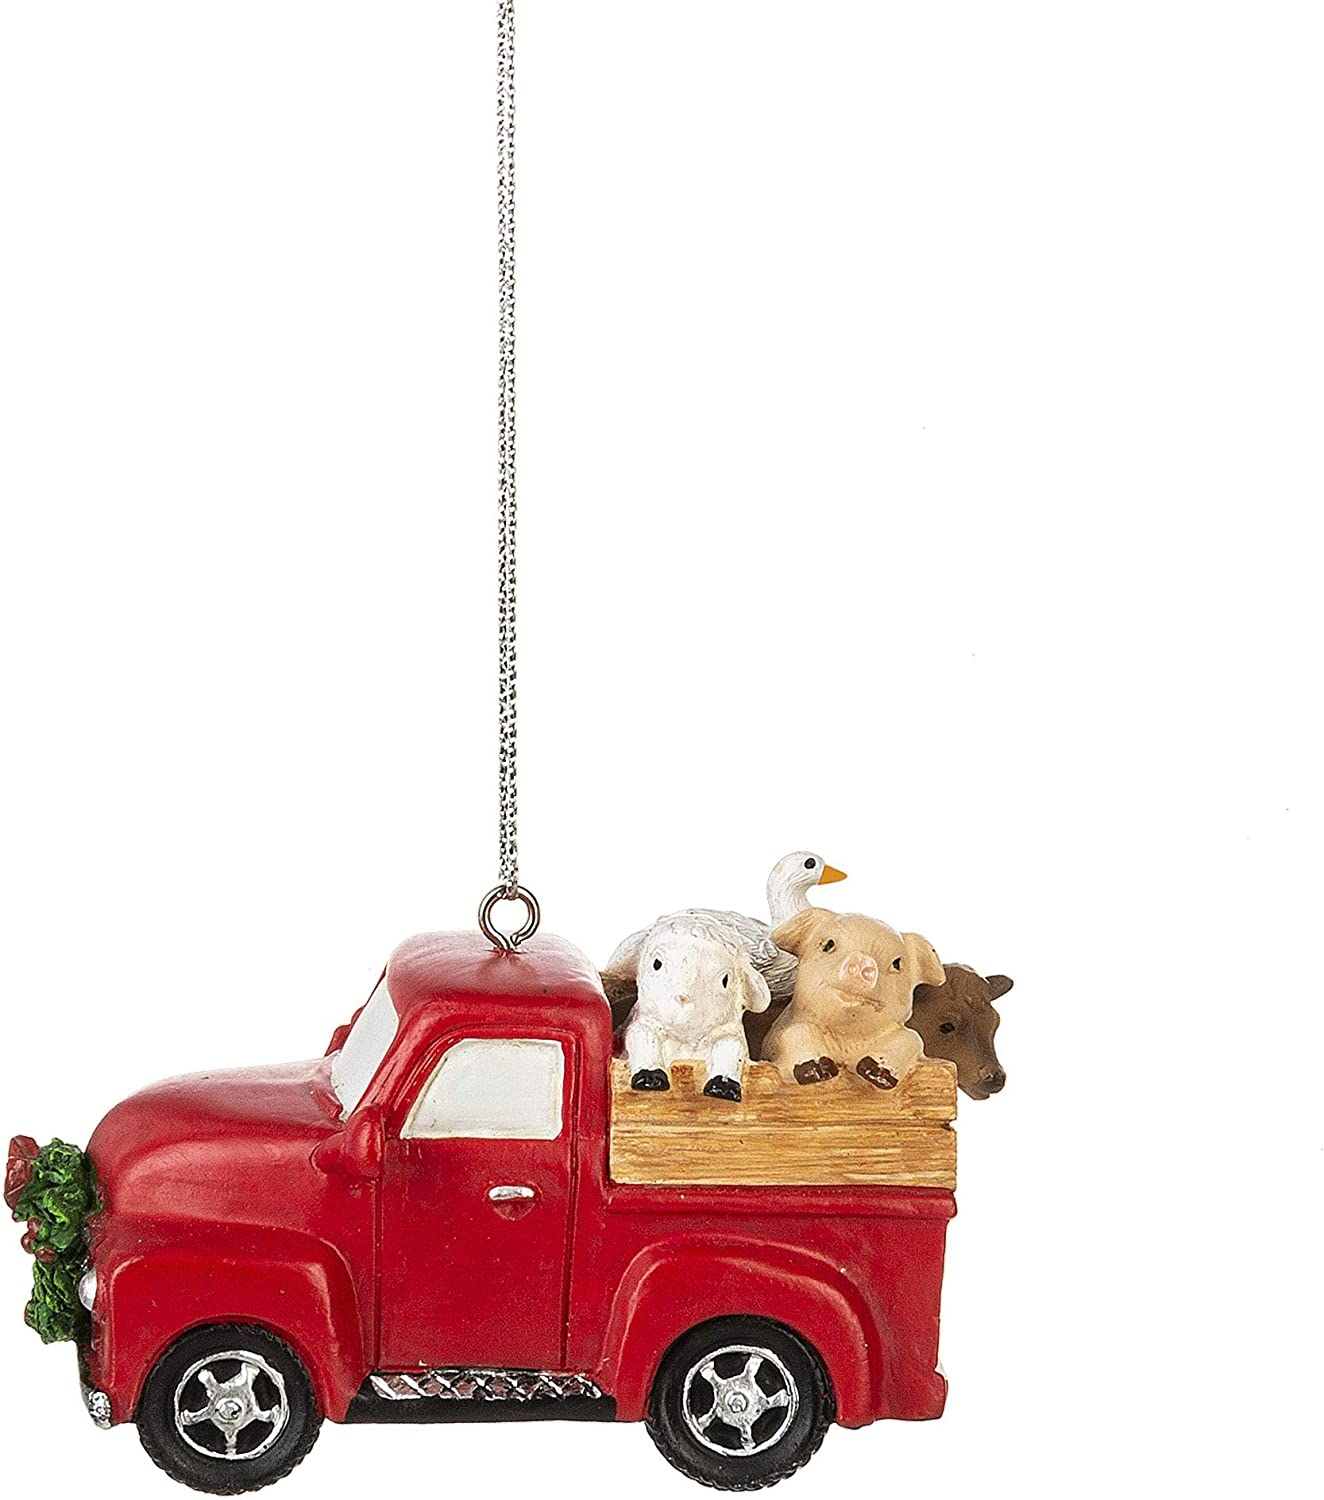 Vintage Red Truck 2 inch Resin Decorative Christmas Ornament